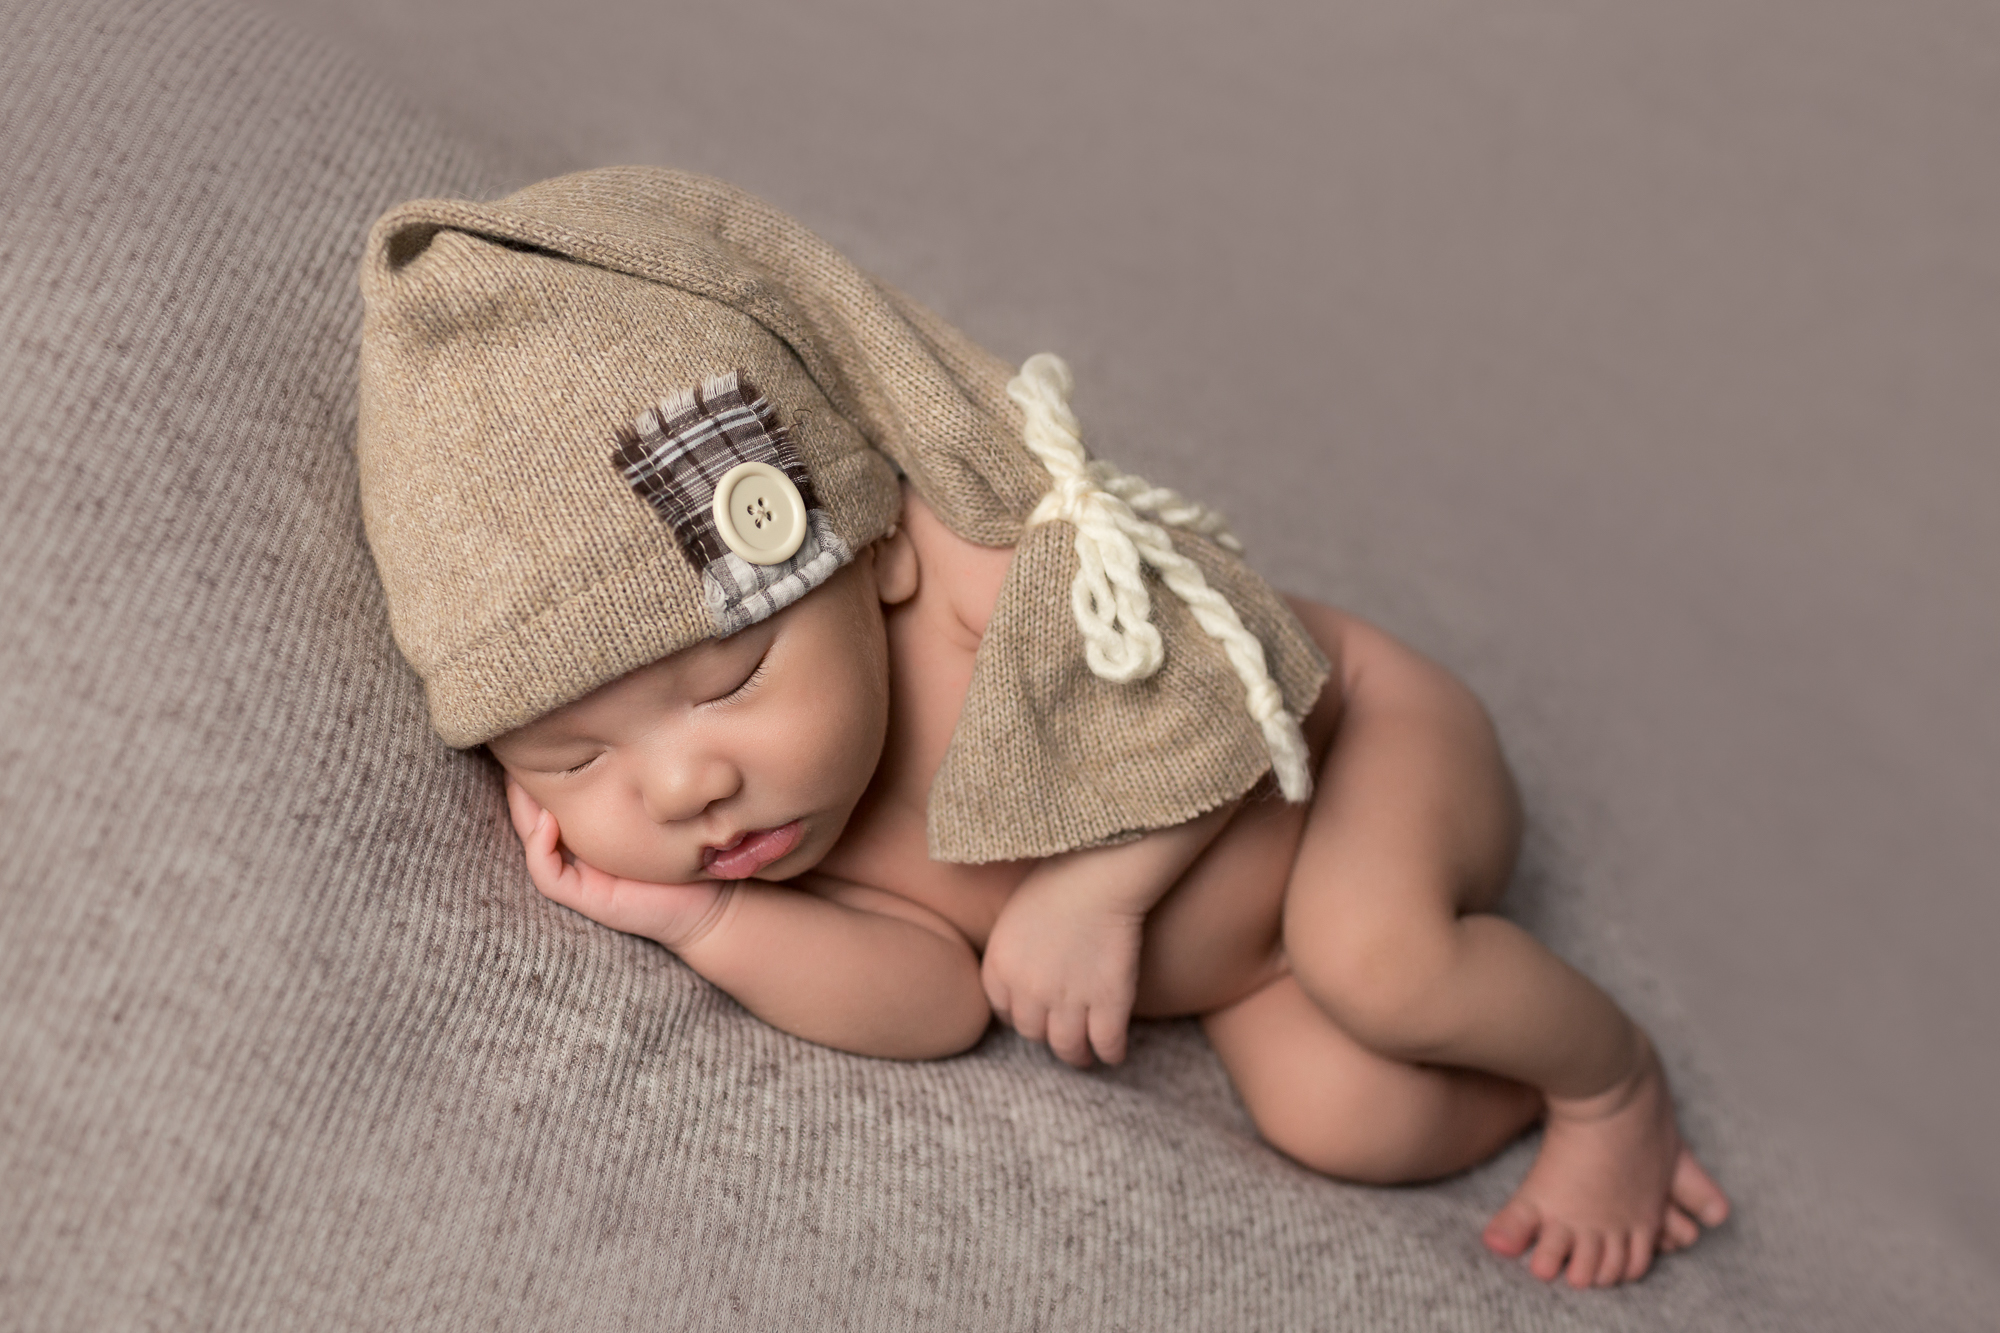 Newborn Baby Boy Rome with sleepy cap during newborn photography session in San Diego, CA